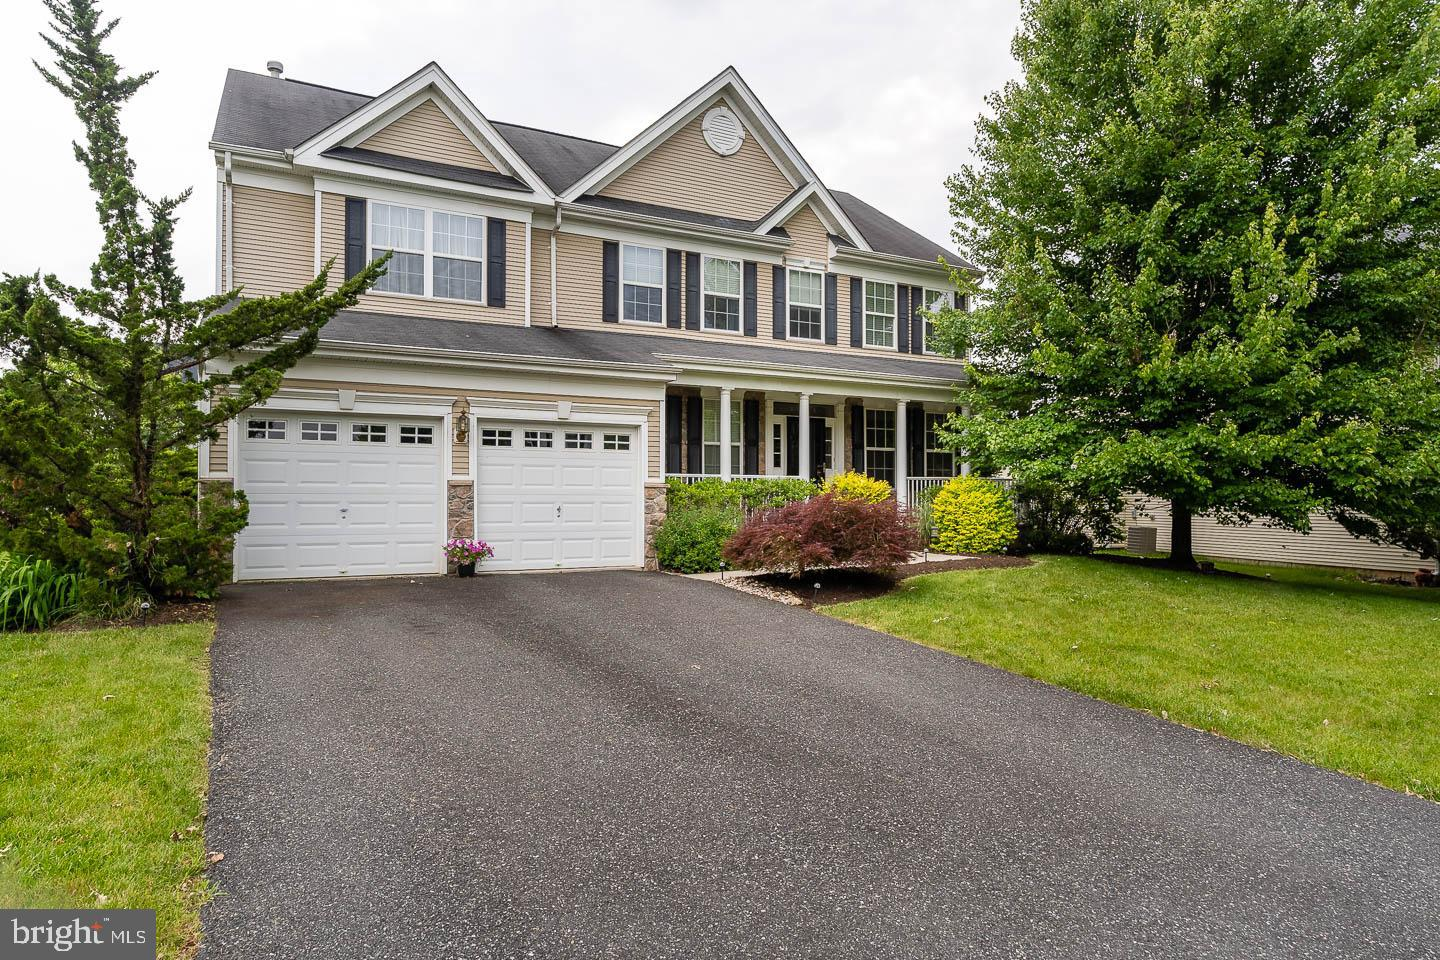 3490 CHESTER DRIVE, MACUNGIE, PA 18062